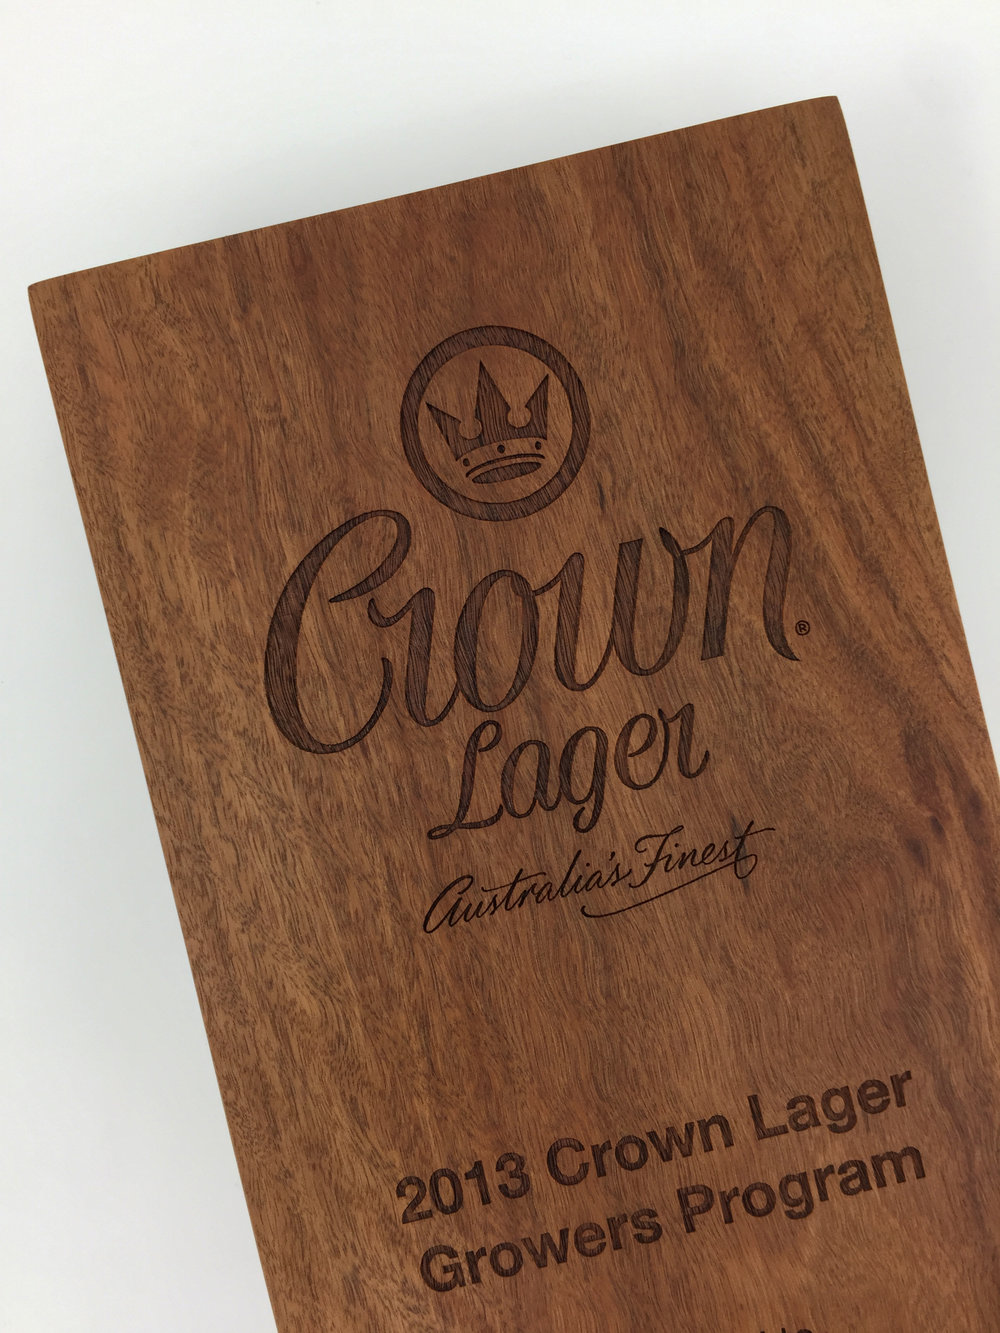 crown-lager-plaque-eco-timber-engraved-awards-trophy-02.jpg